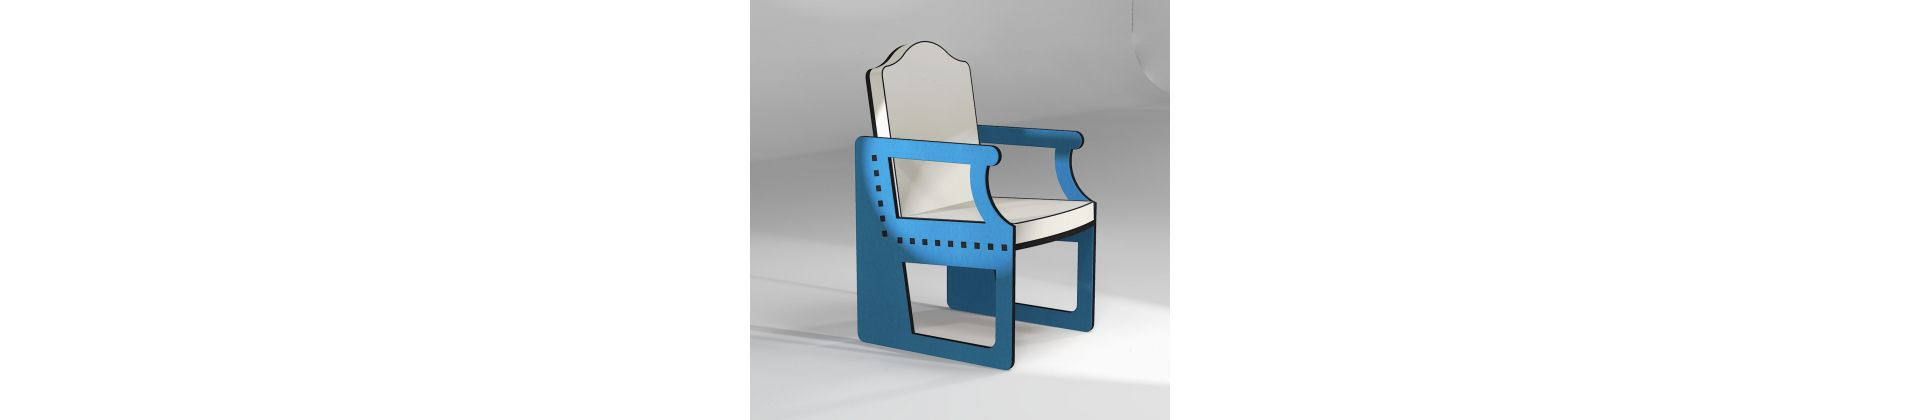 Armchair to stand up easily